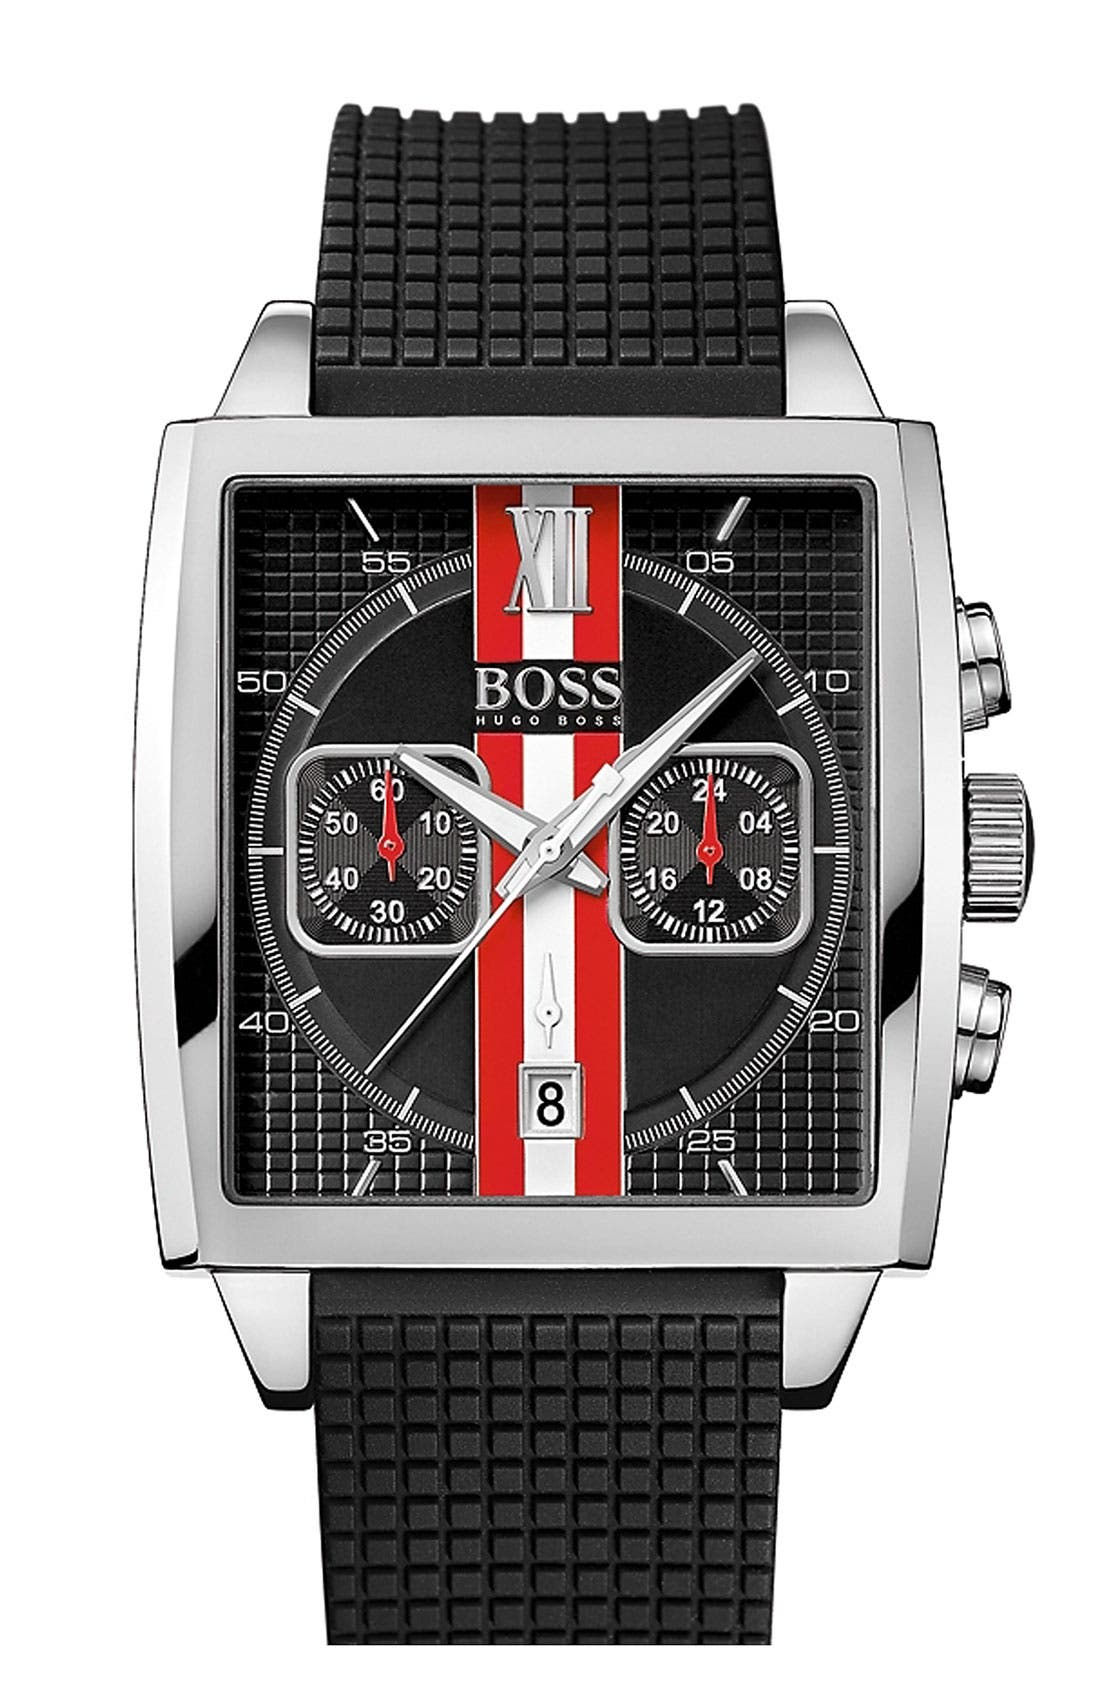 Alternate Image 1 Selected - BOSS 'HB1005' Multifunction Square Dial Strap Watch, 39mm